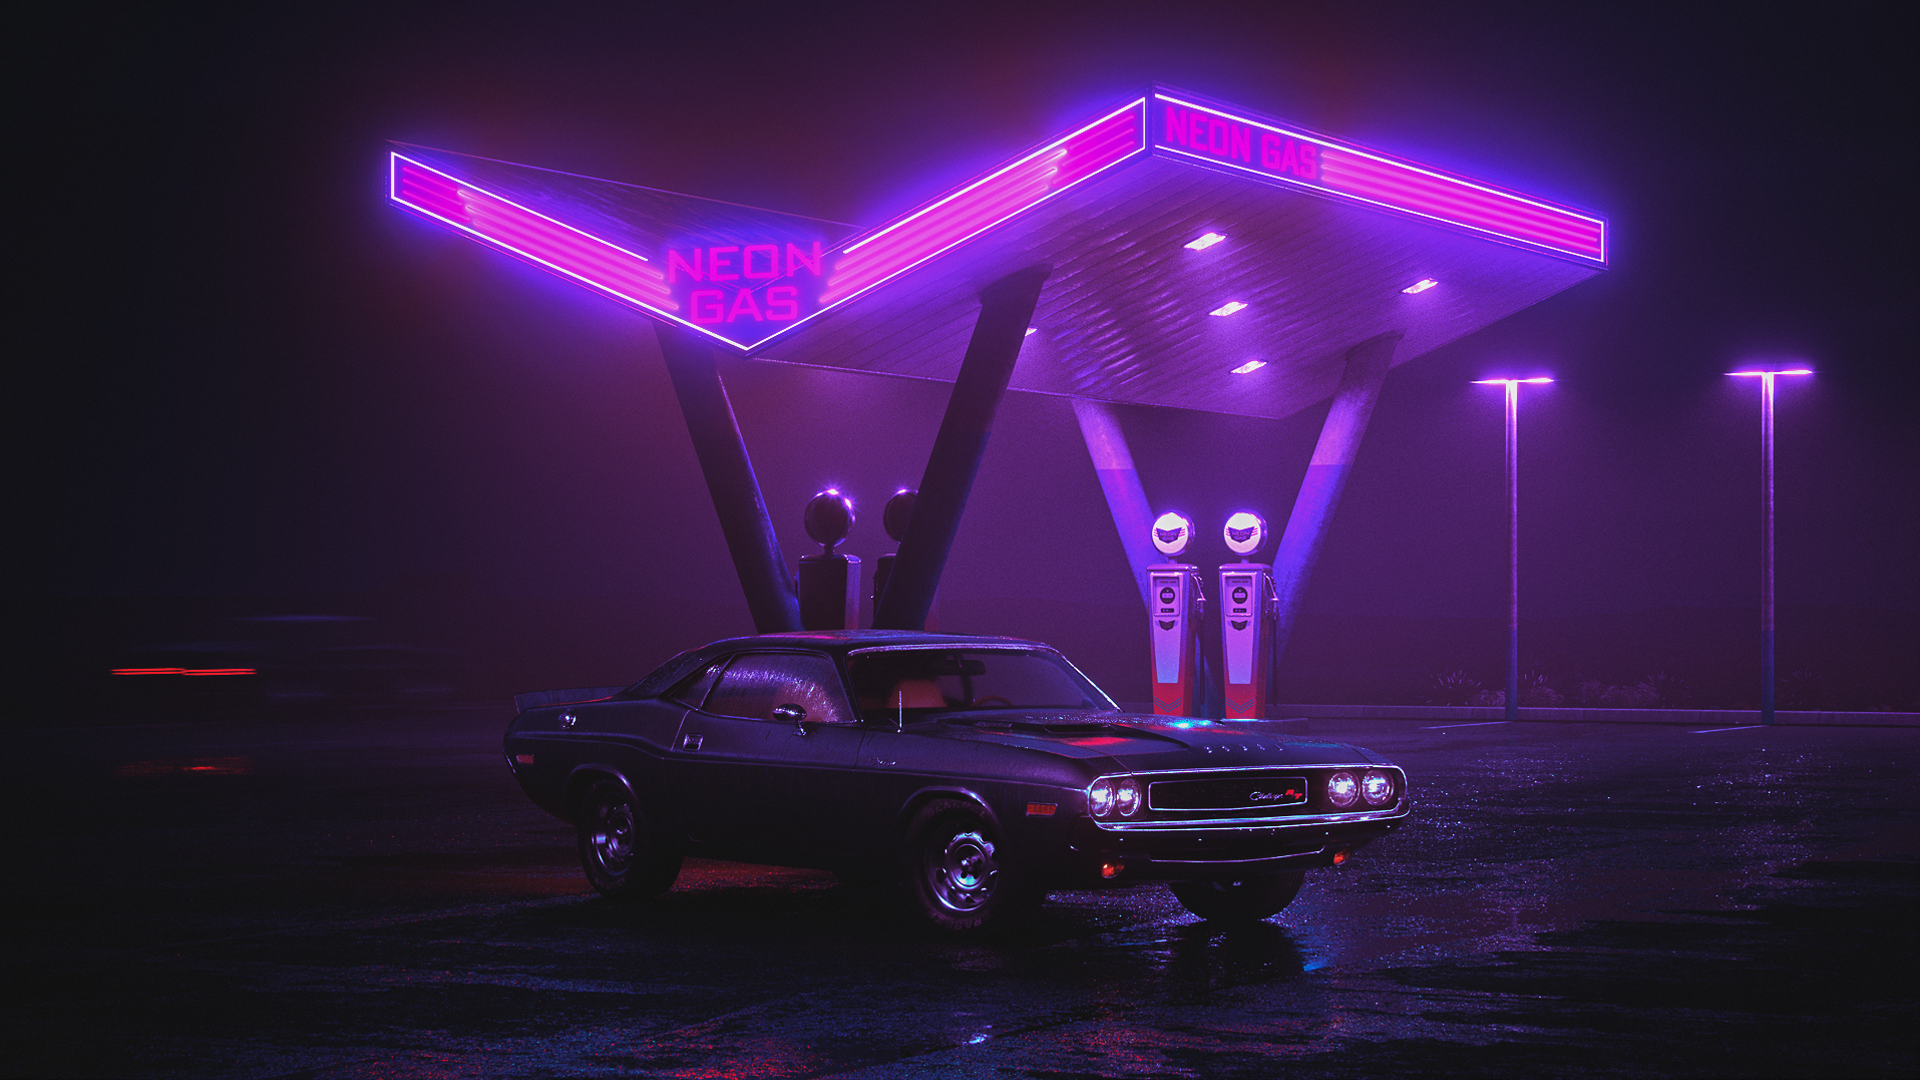 General 1920x1080 car purple Retrowave landscape neon violet night neon glow wet street gas stations dzk Charger RT